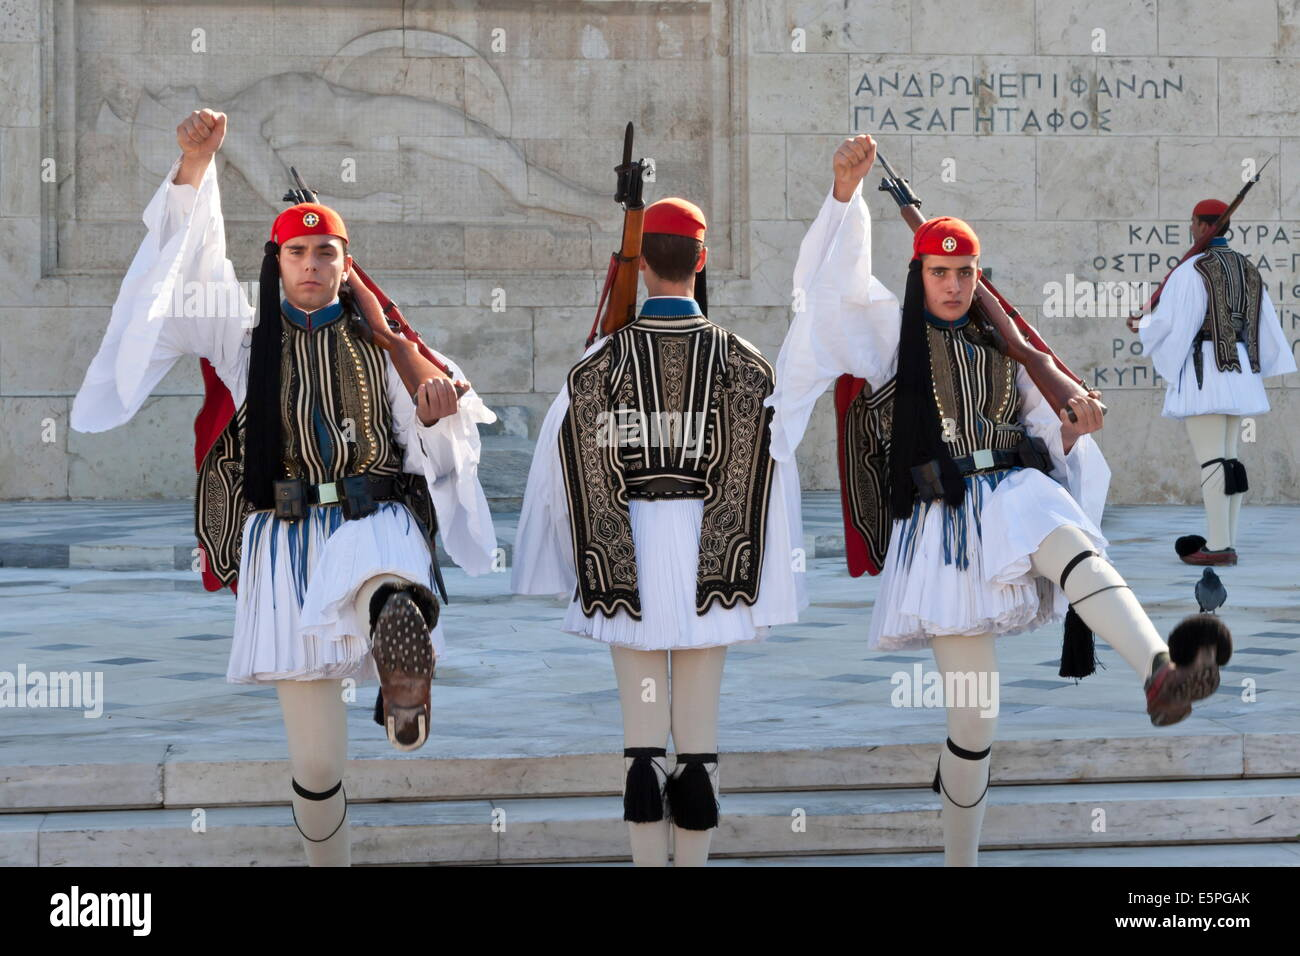 Evzone Soldiers, Changing The Guard, Syntagma Square ...